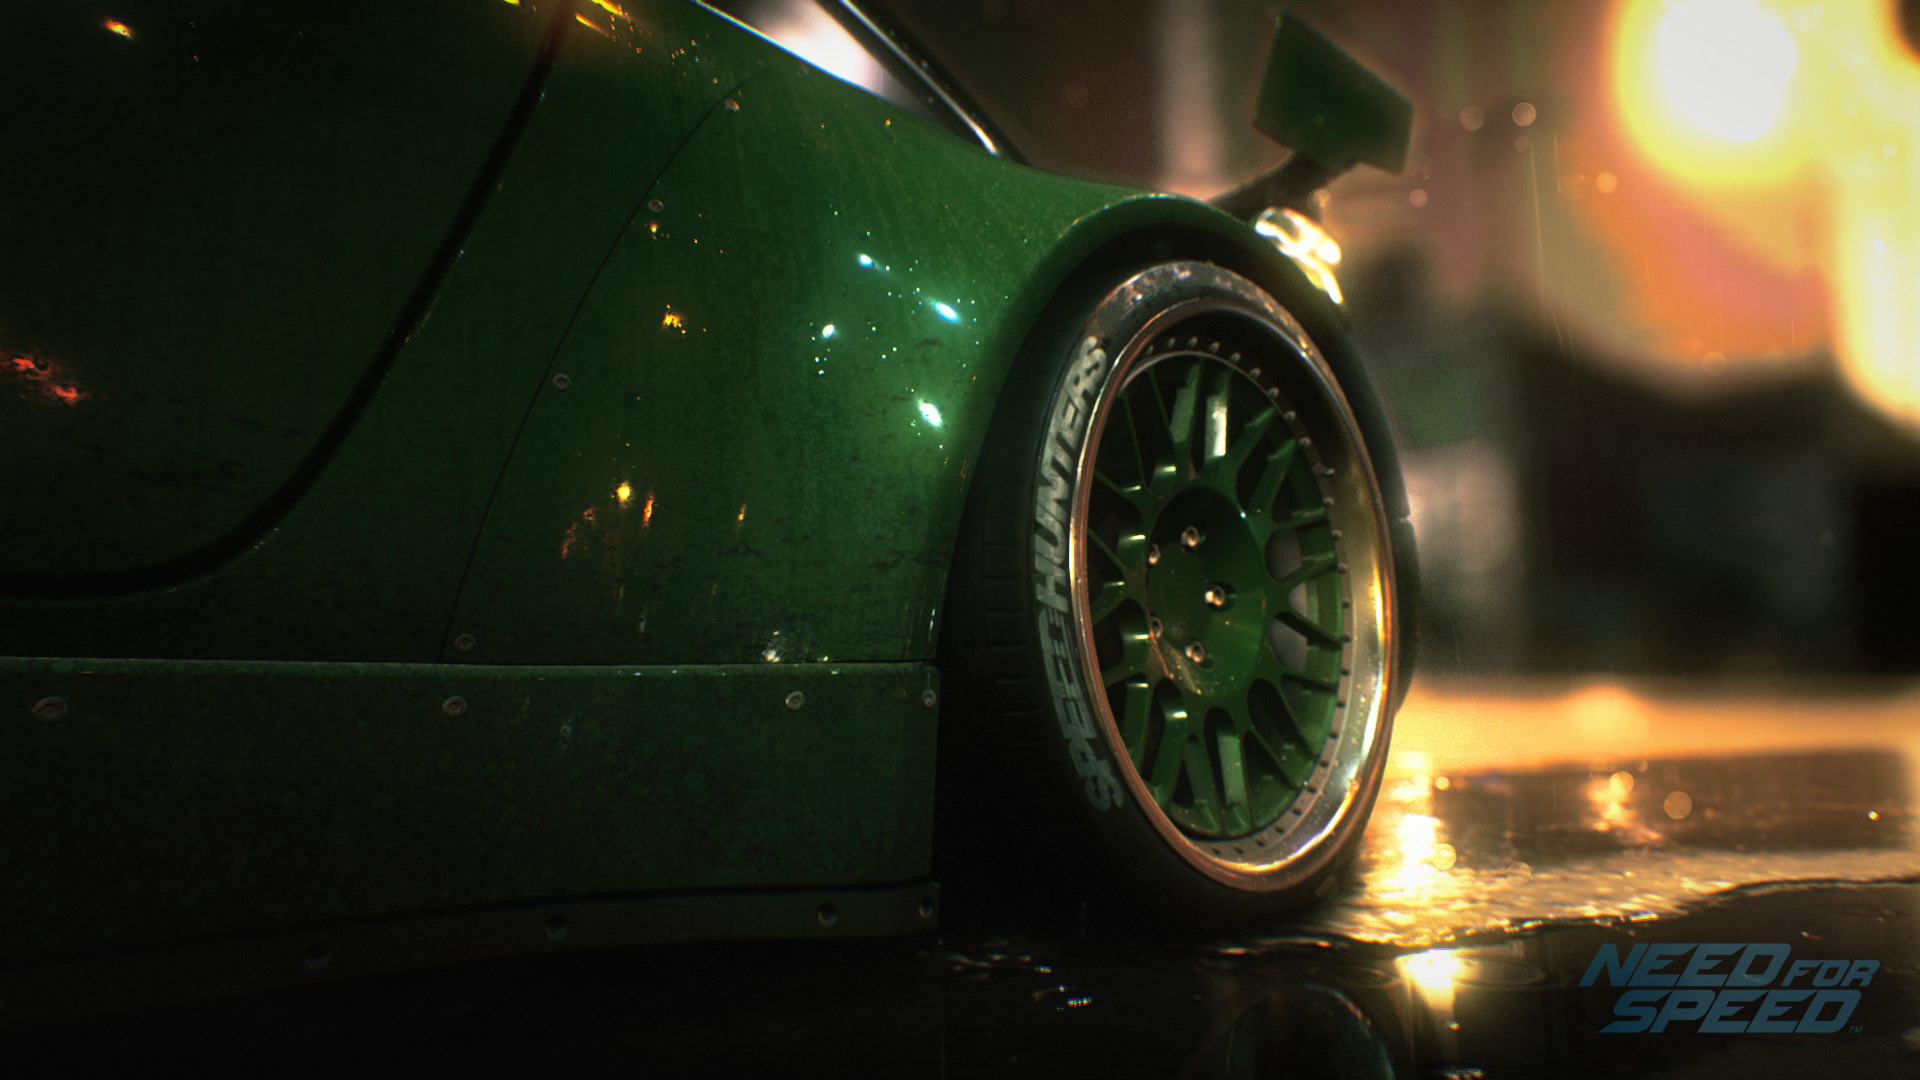 Need for speed 109210